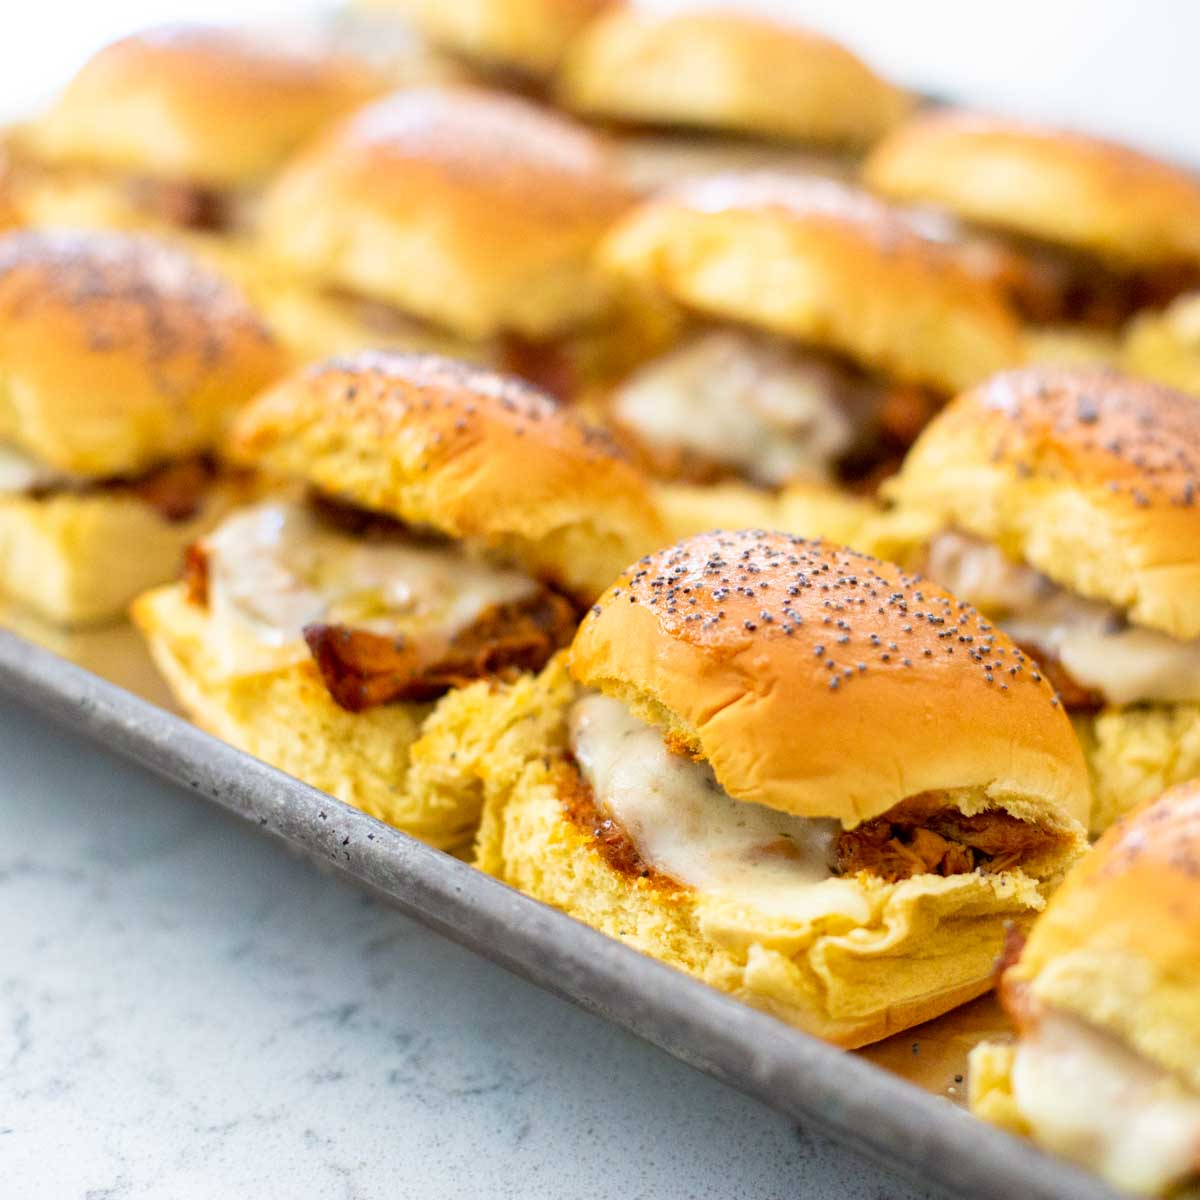 A metal baking pan has 3 rows of baked bbq chicken sliders showing the melted cheese oozing out.